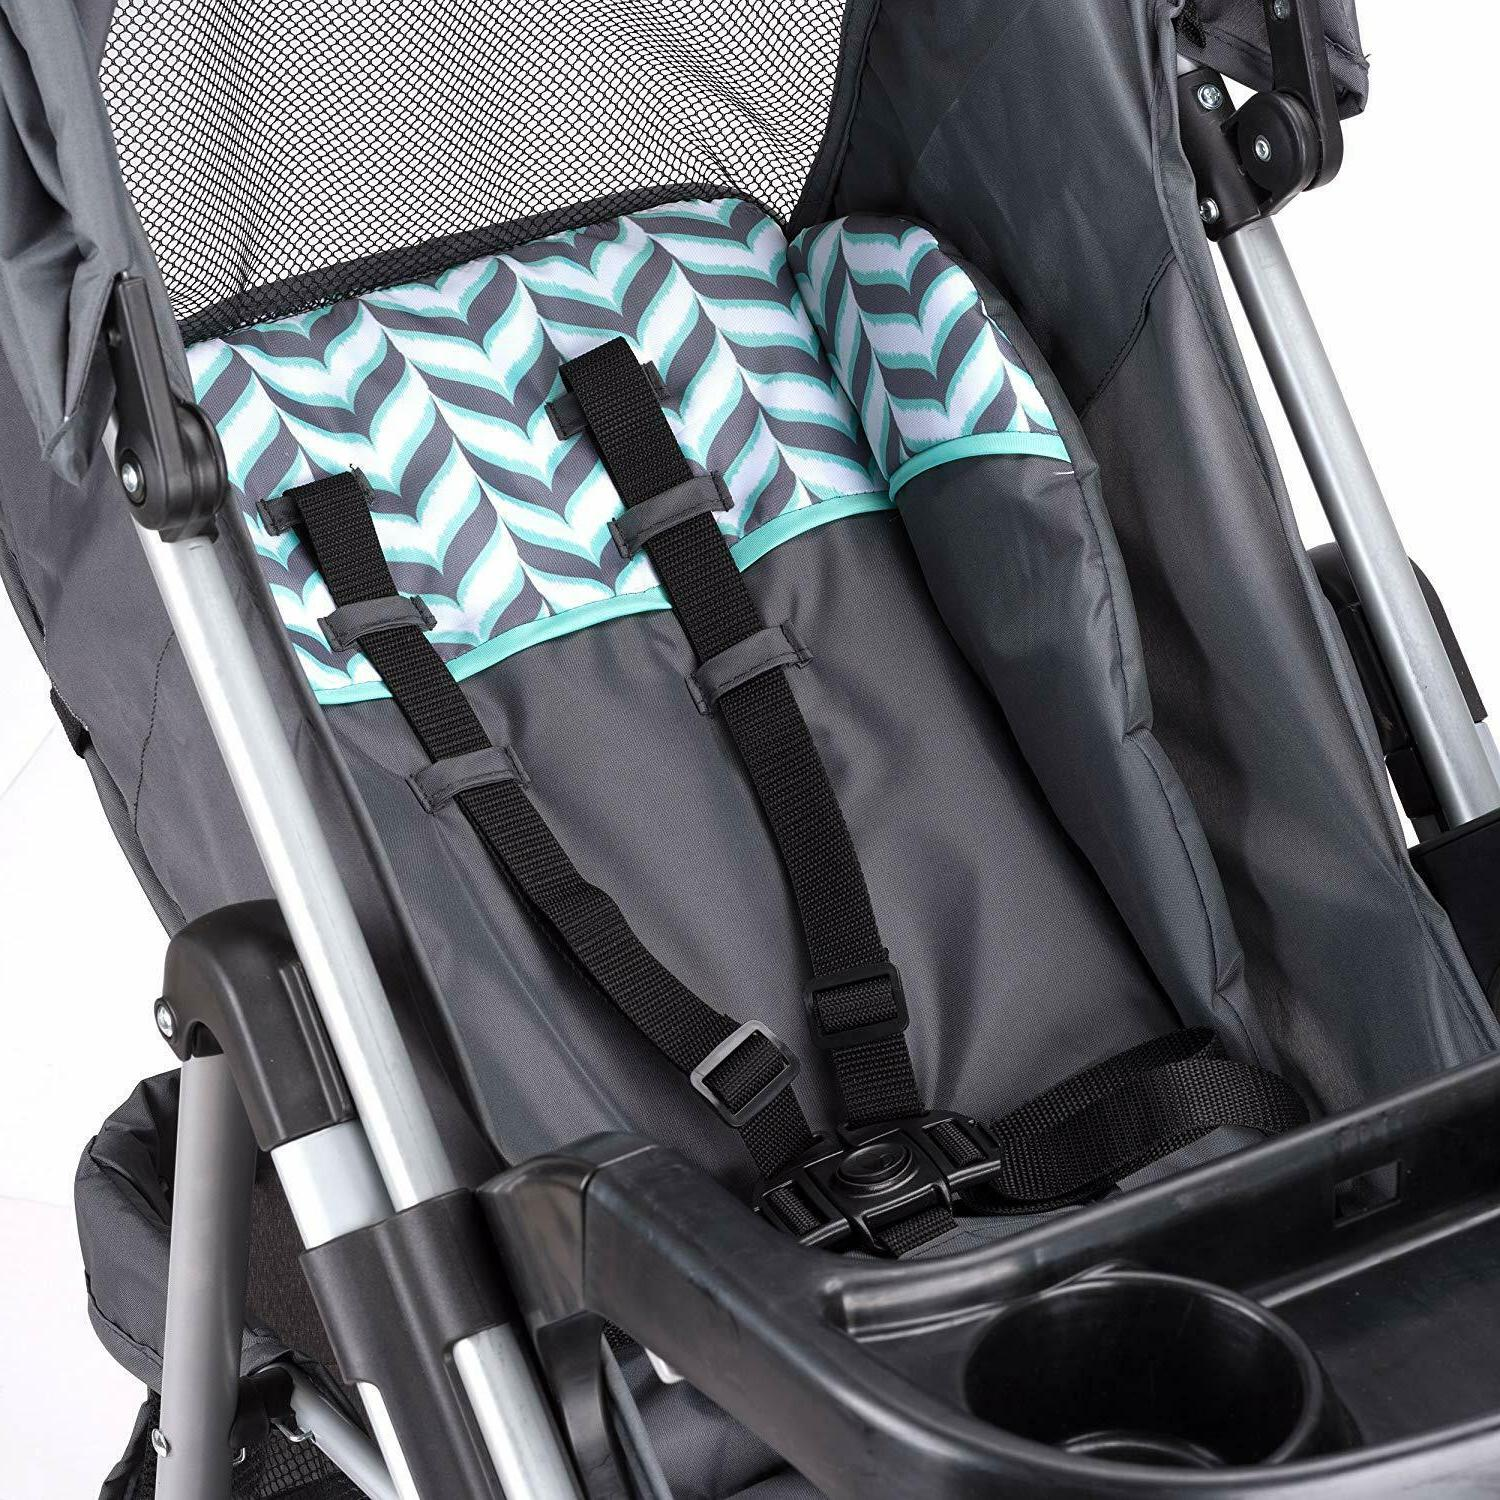 Evenflo Travel System with Spree